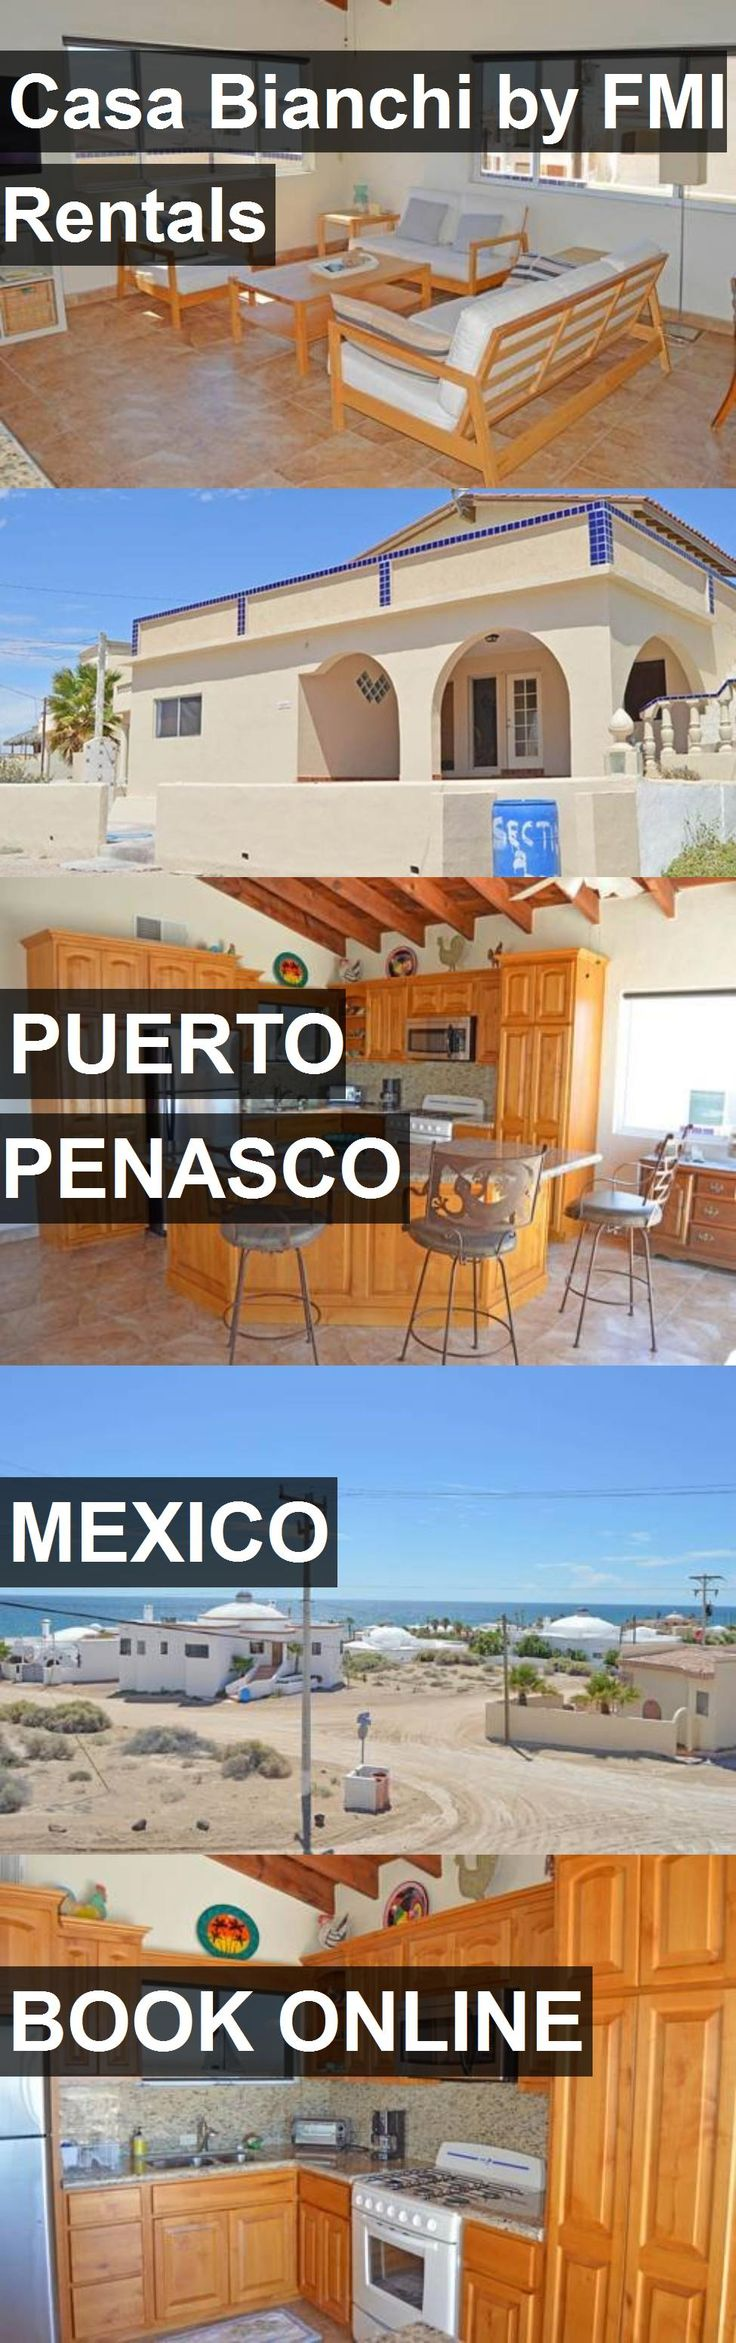 Hotel Casa Bianchi by FMI Rentals in Puerto Penasco, Mexico. For more information, photos, reviews and best prices please follow the link. #Mexico #PuertoPenasco #CasaBianchibyFMIRentals #hotel #travel #vacation